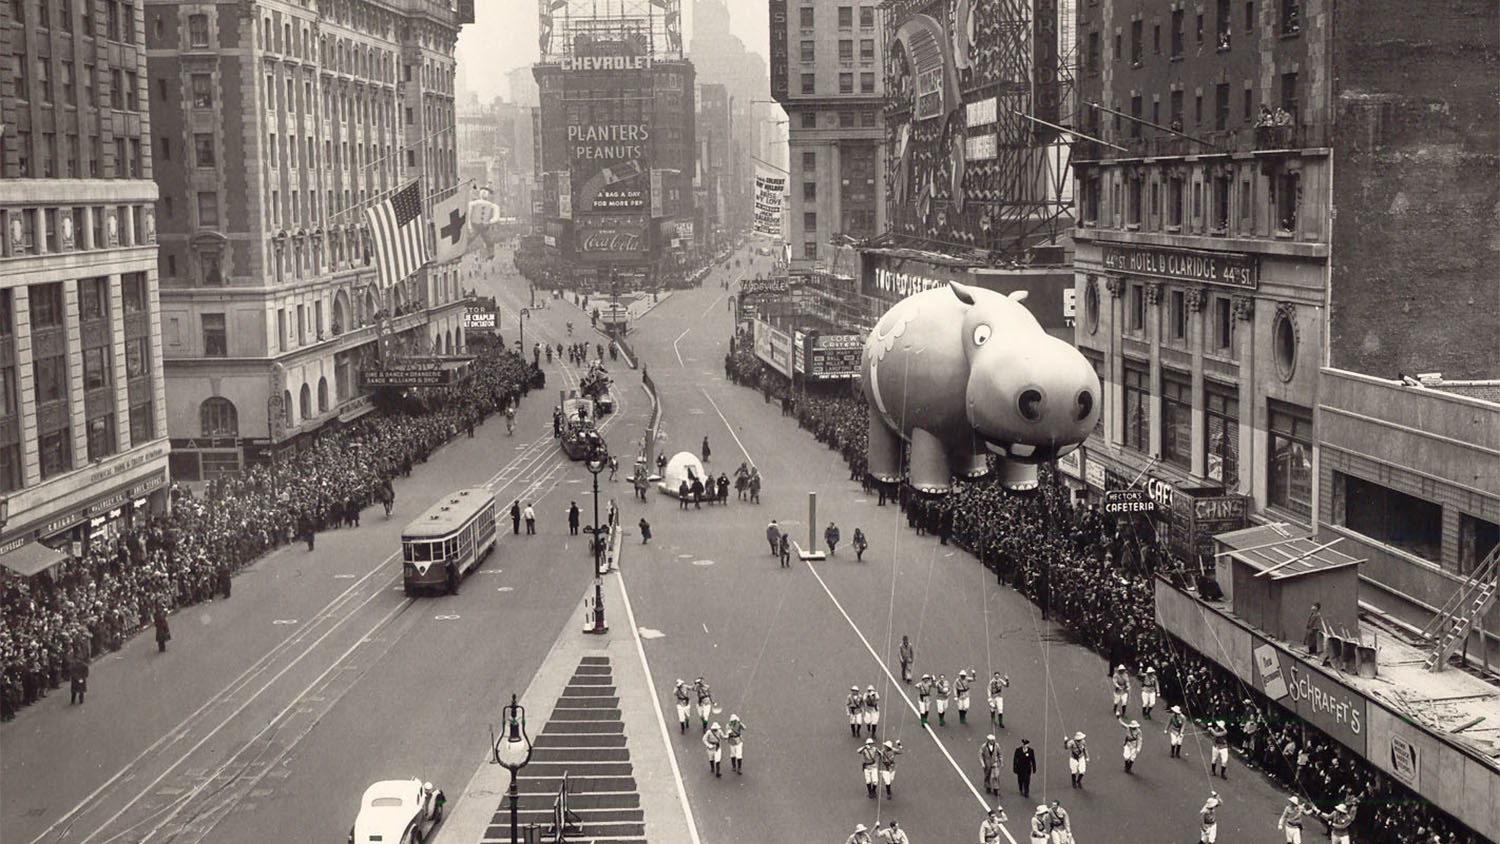 Snoopy Fall Wallpaper Vintage Photos Of The Macy S Thanksgiving Day Parade In Nyc